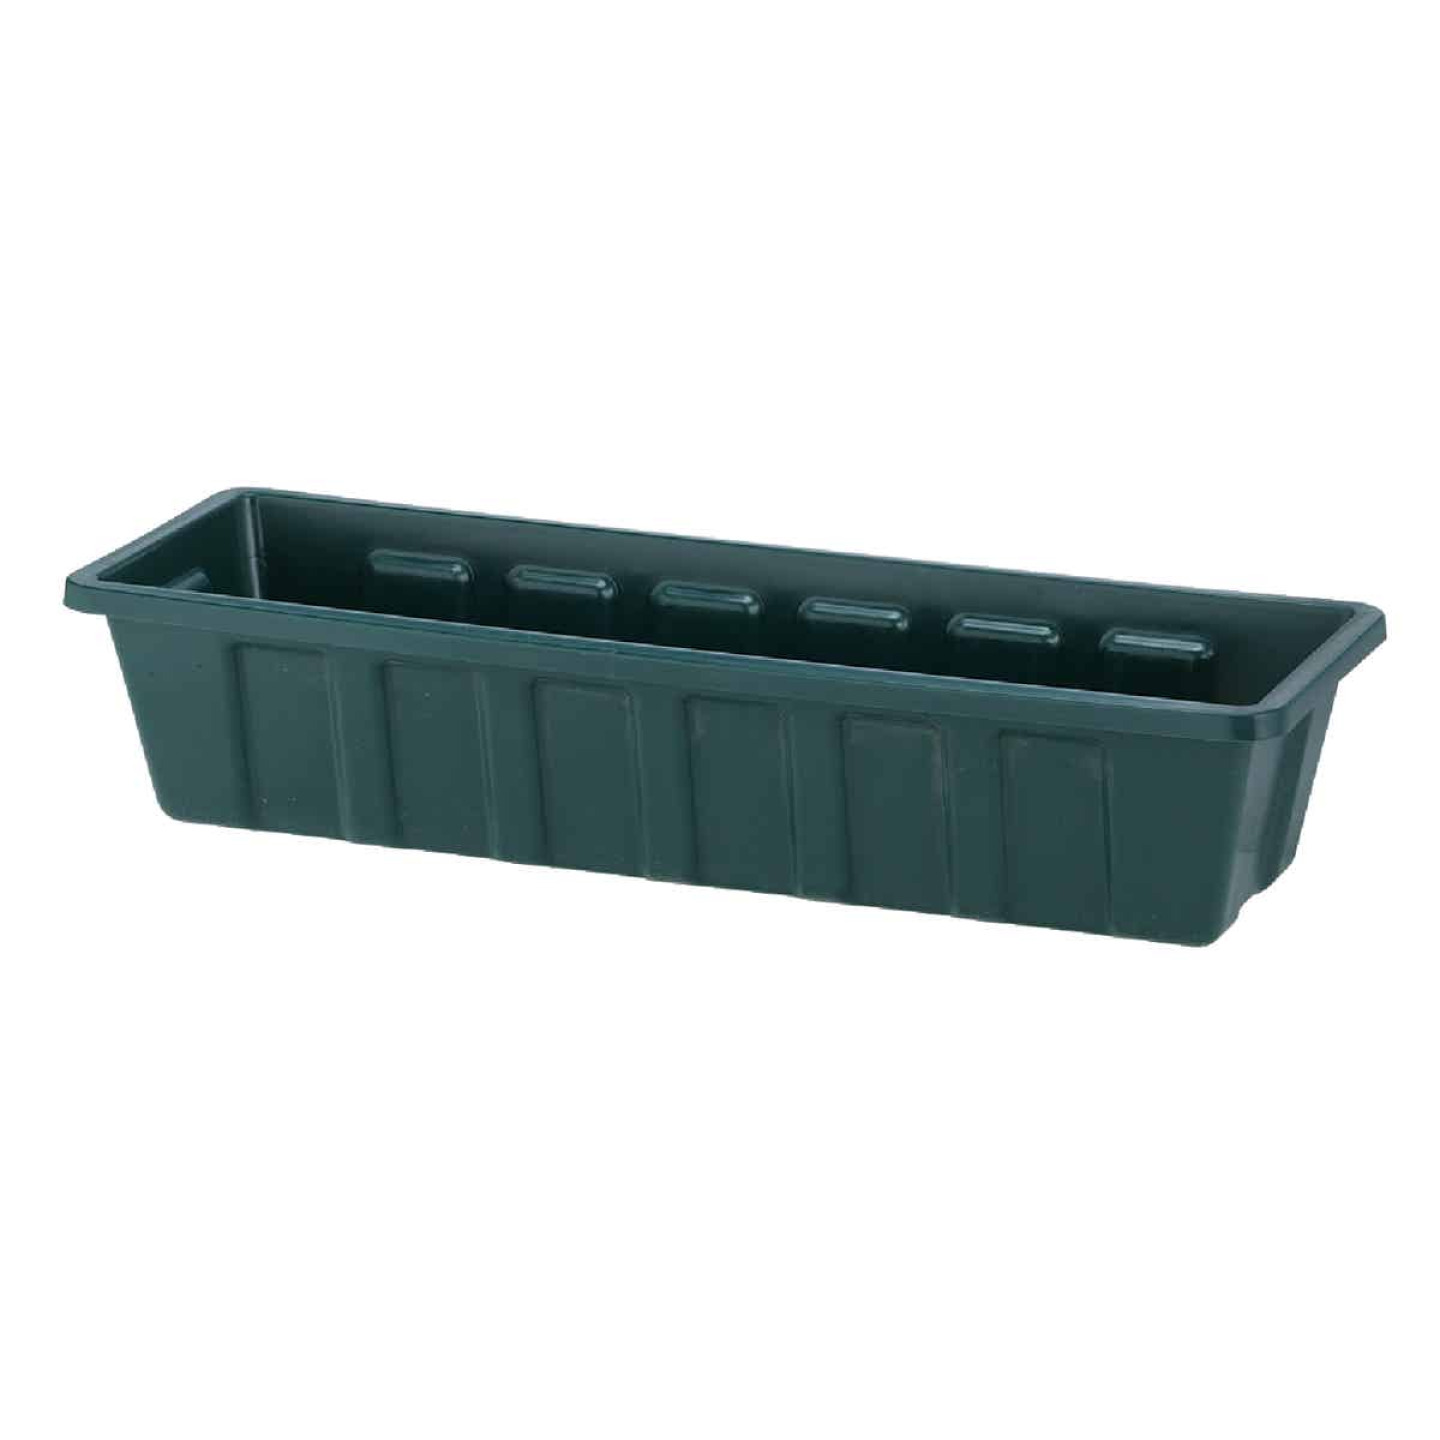 Novelty Poly-Pro 24 In. Polypropylene Hunter Green Flower Box Planter Image 1